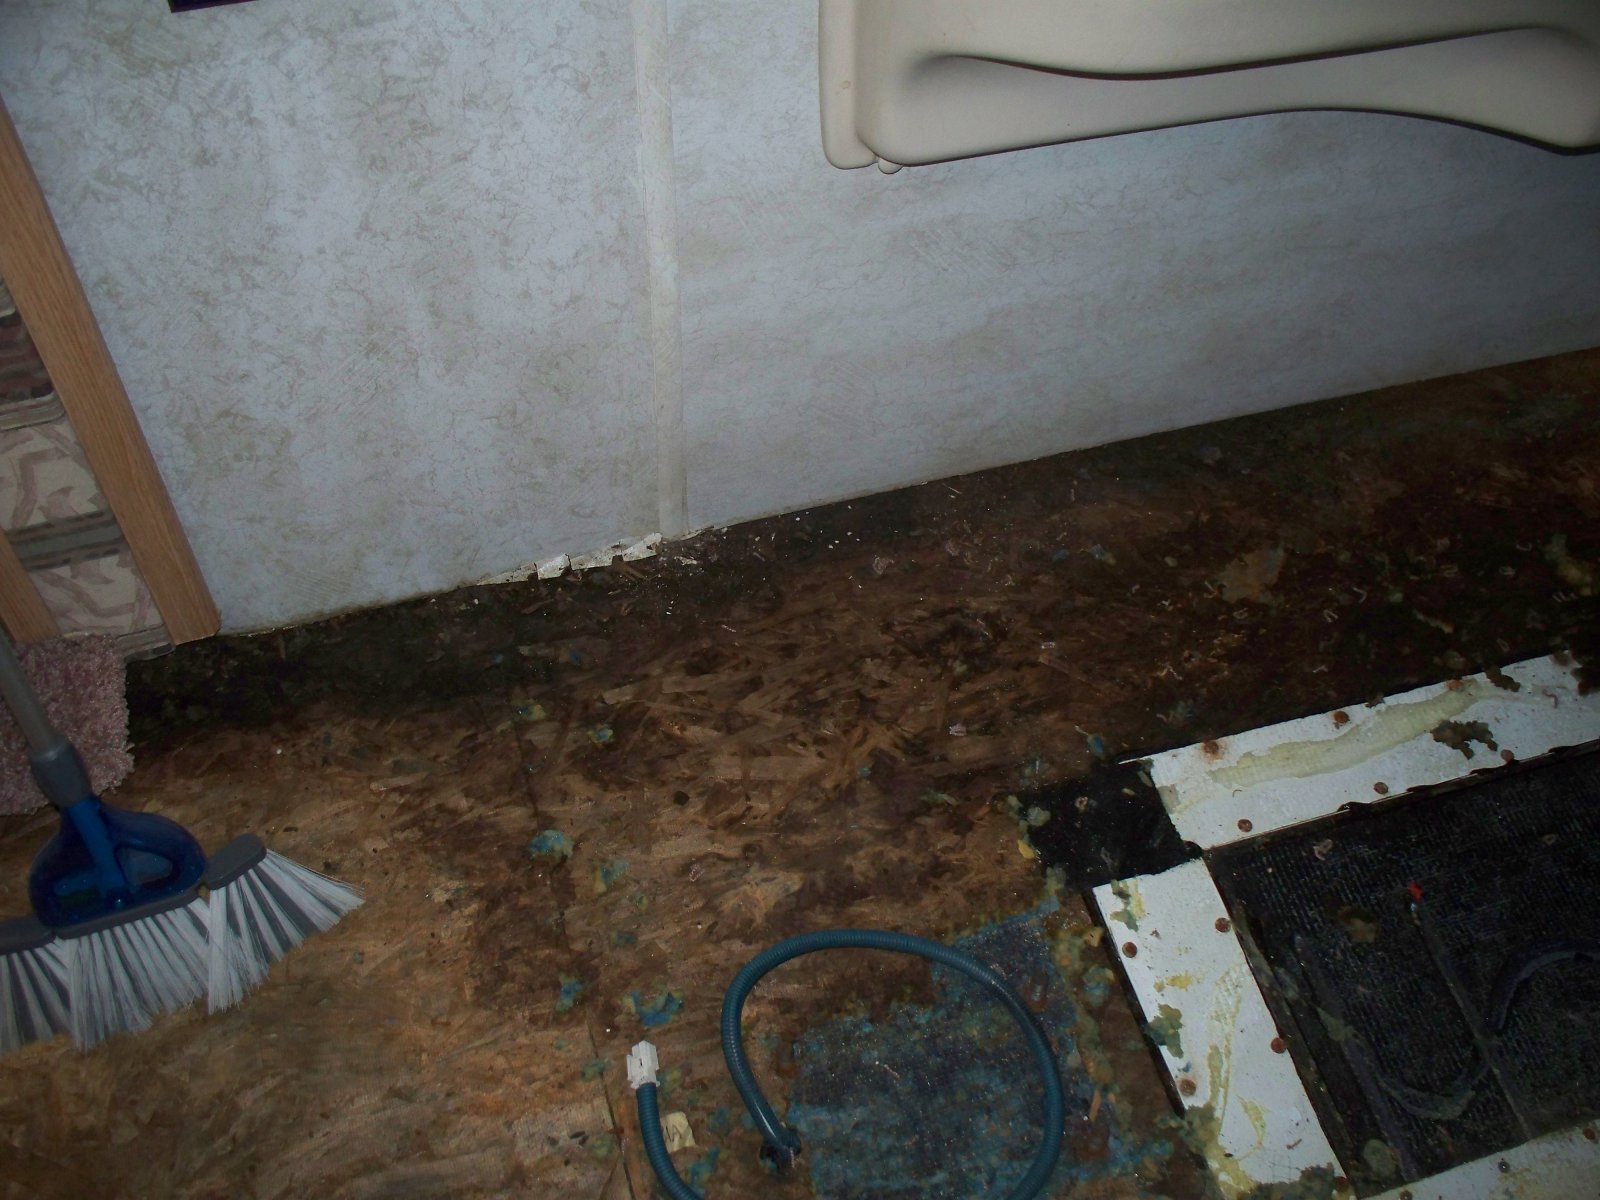 Click image for larger version  Name:#011 Dam, Dry Rot, now what.jpg Views:123 Size:274.4 KB ID:33323